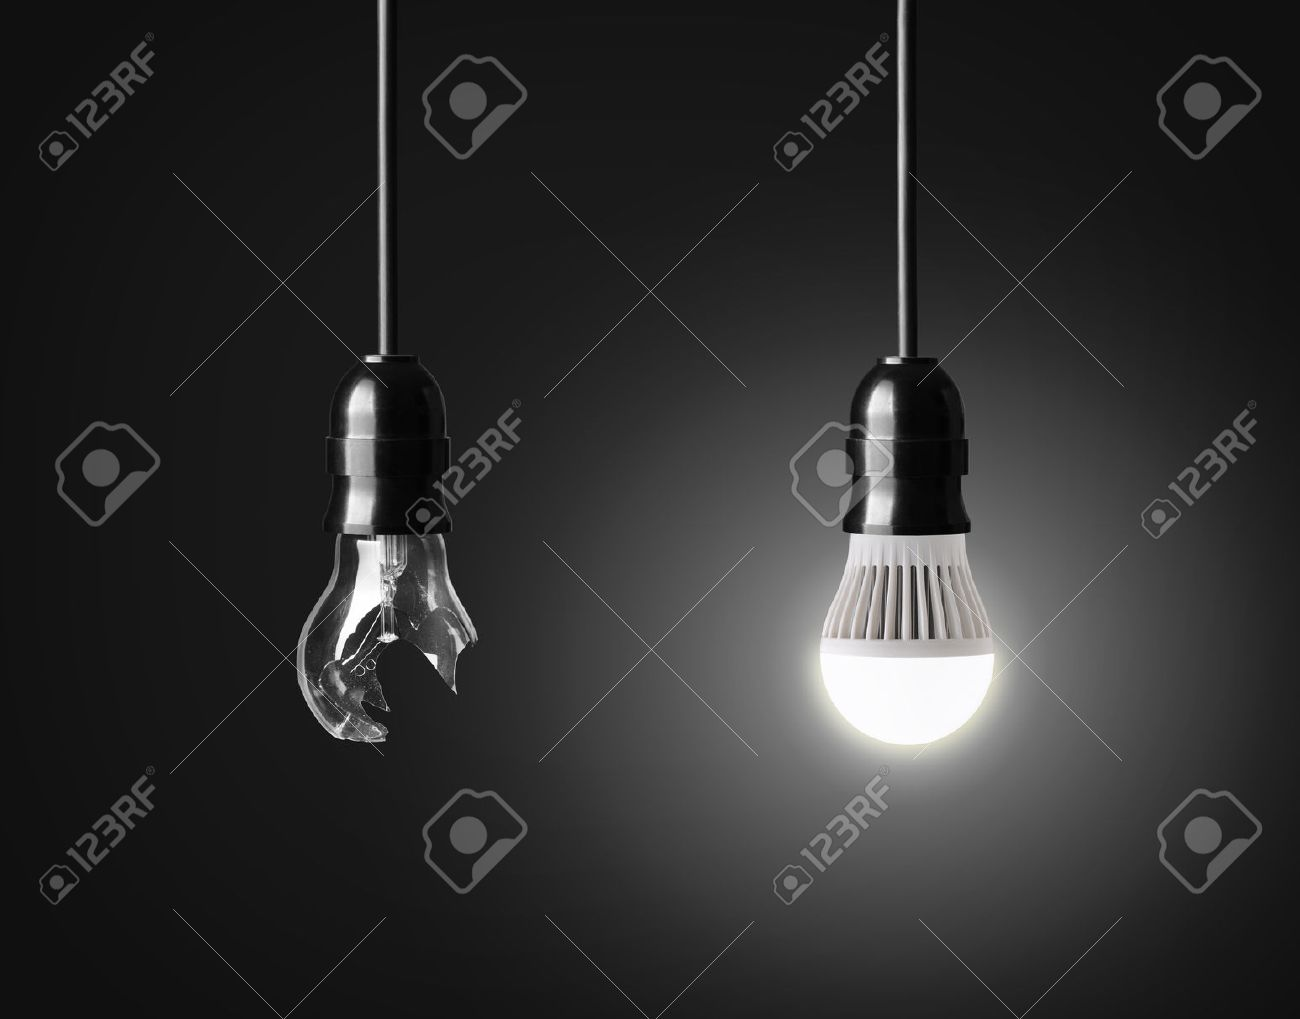 Broken light bulb and glowing LED bulb on black Stock Photo & Led Light Stock Photos. Royalty Free Led Light Images And Pictures azcodes.com